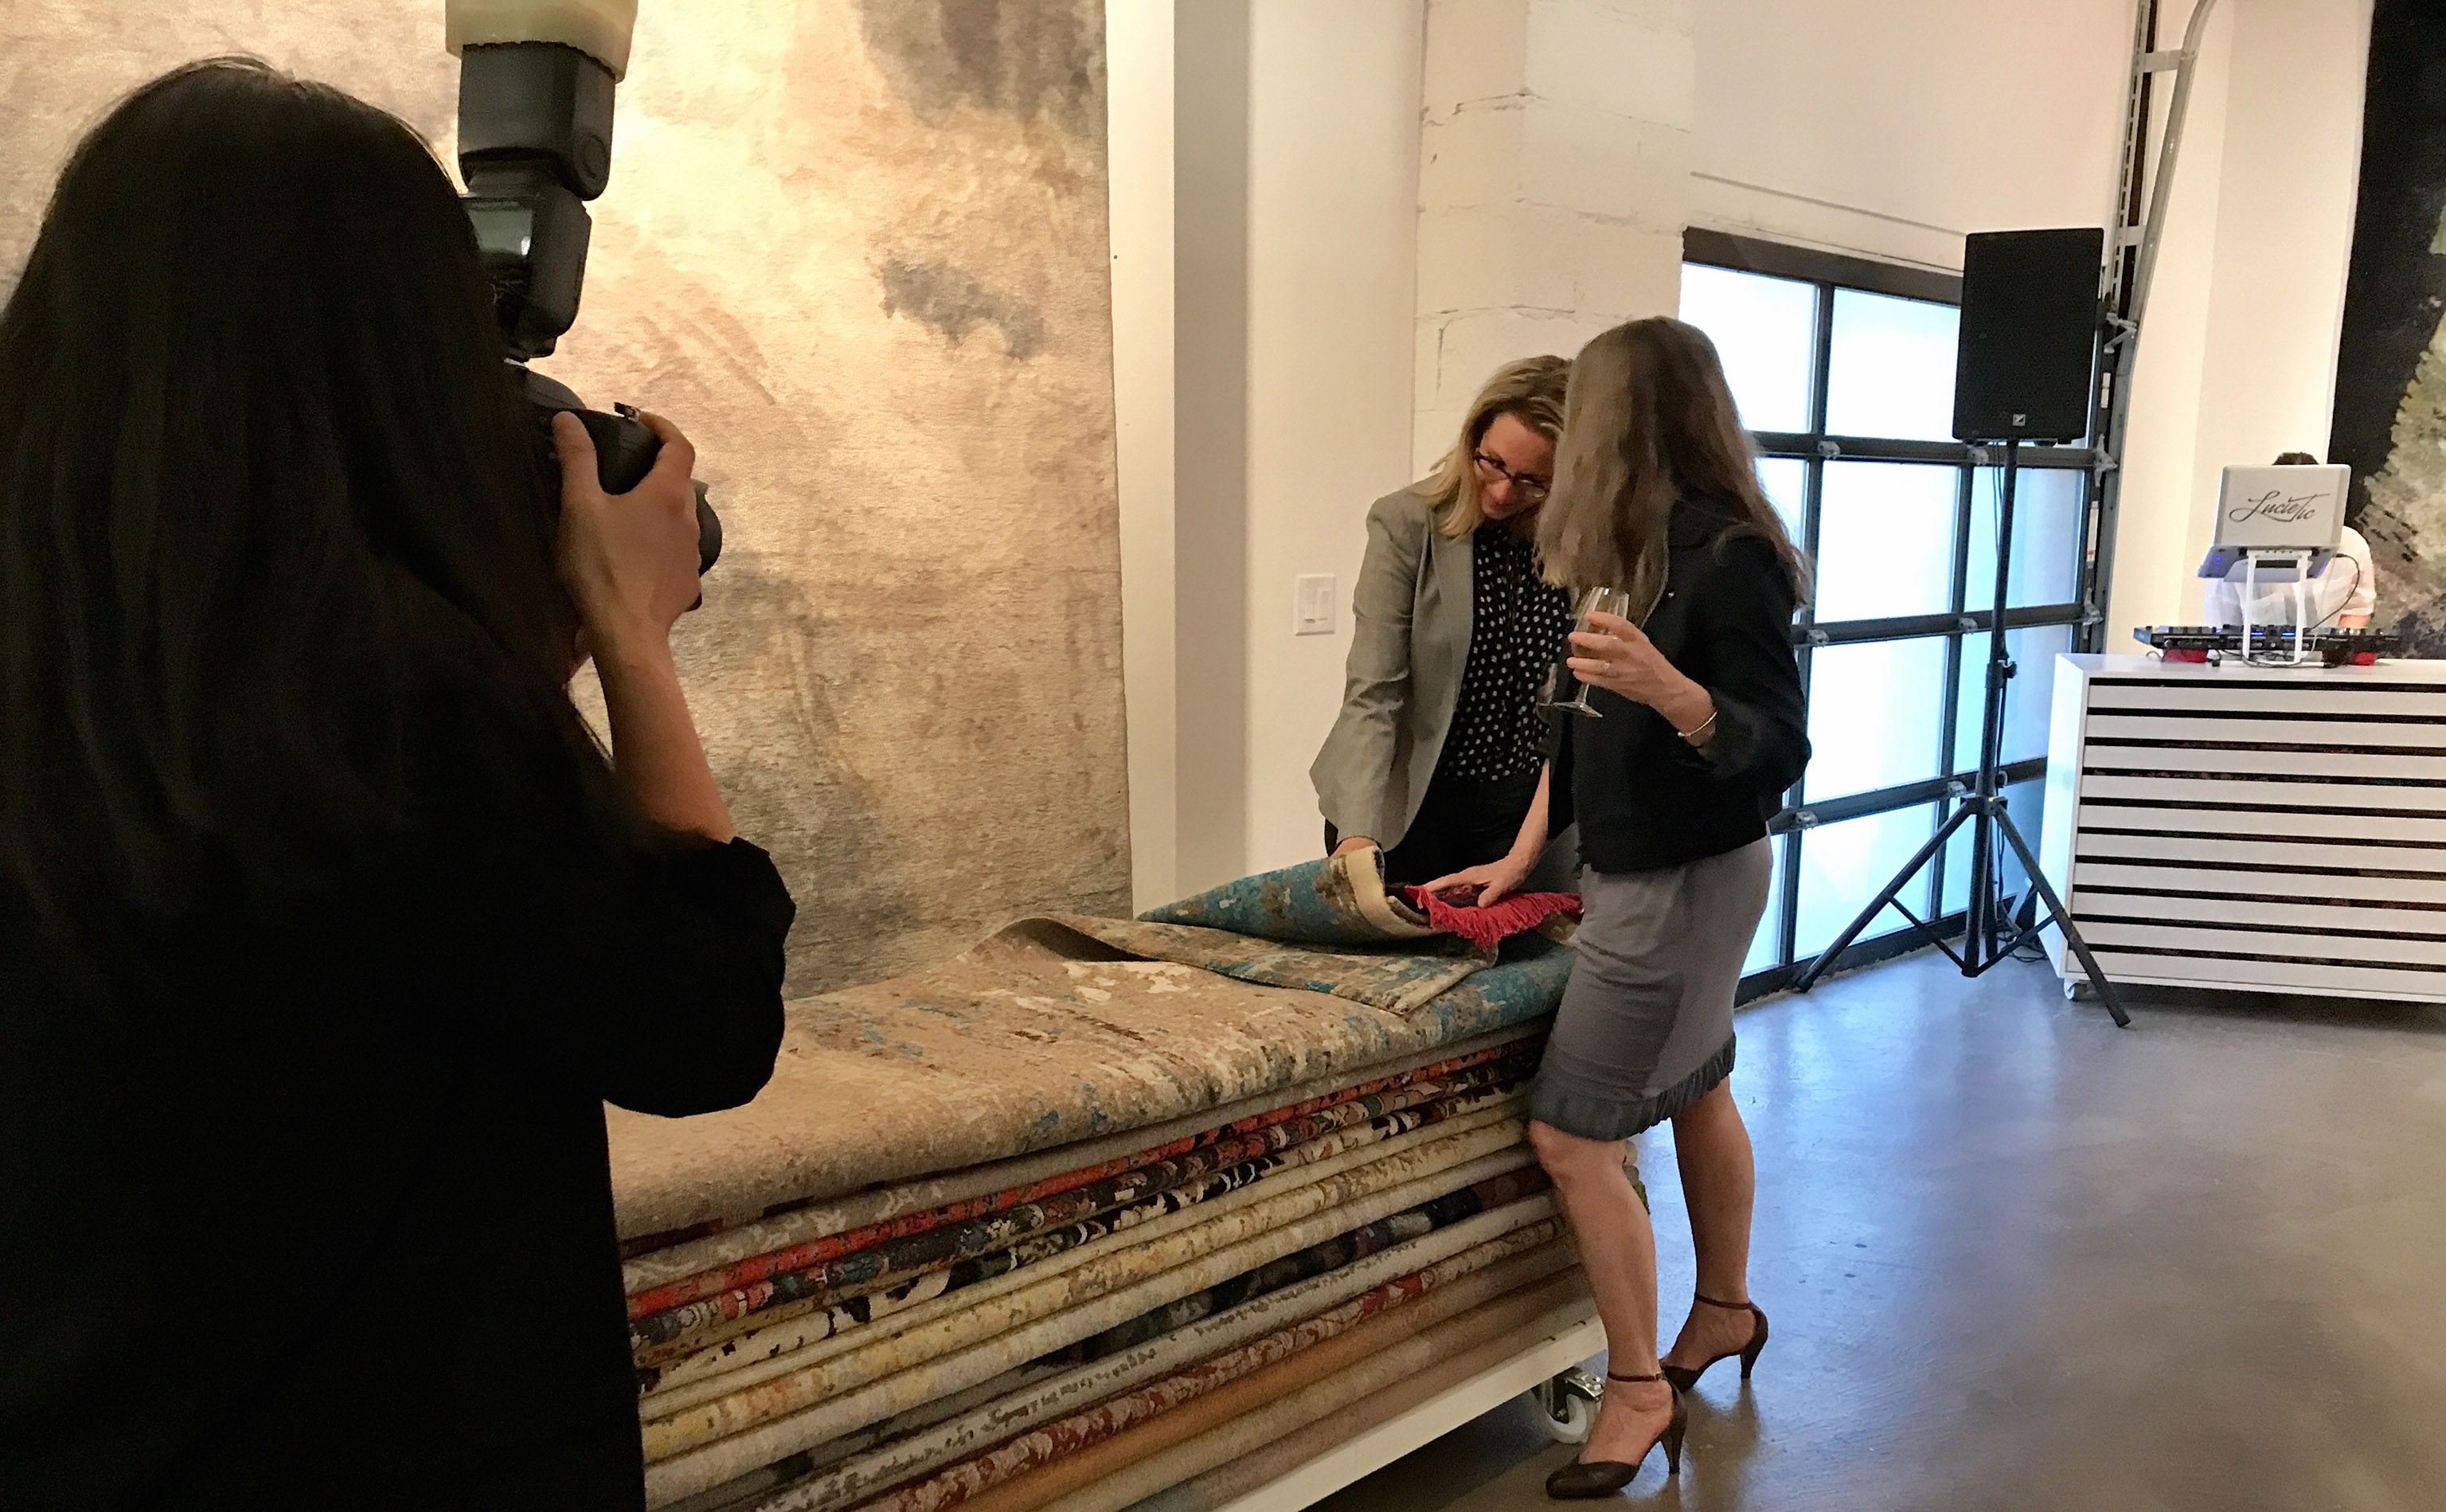 Unidentified women continue browsing at the encouragement of photographer Nancy Kim as she captures their interest during the opening of Finlay and Kath's new Jan Kath Toronto showroom on Thursday, 10 May 2018.   Image by The Ruggist.